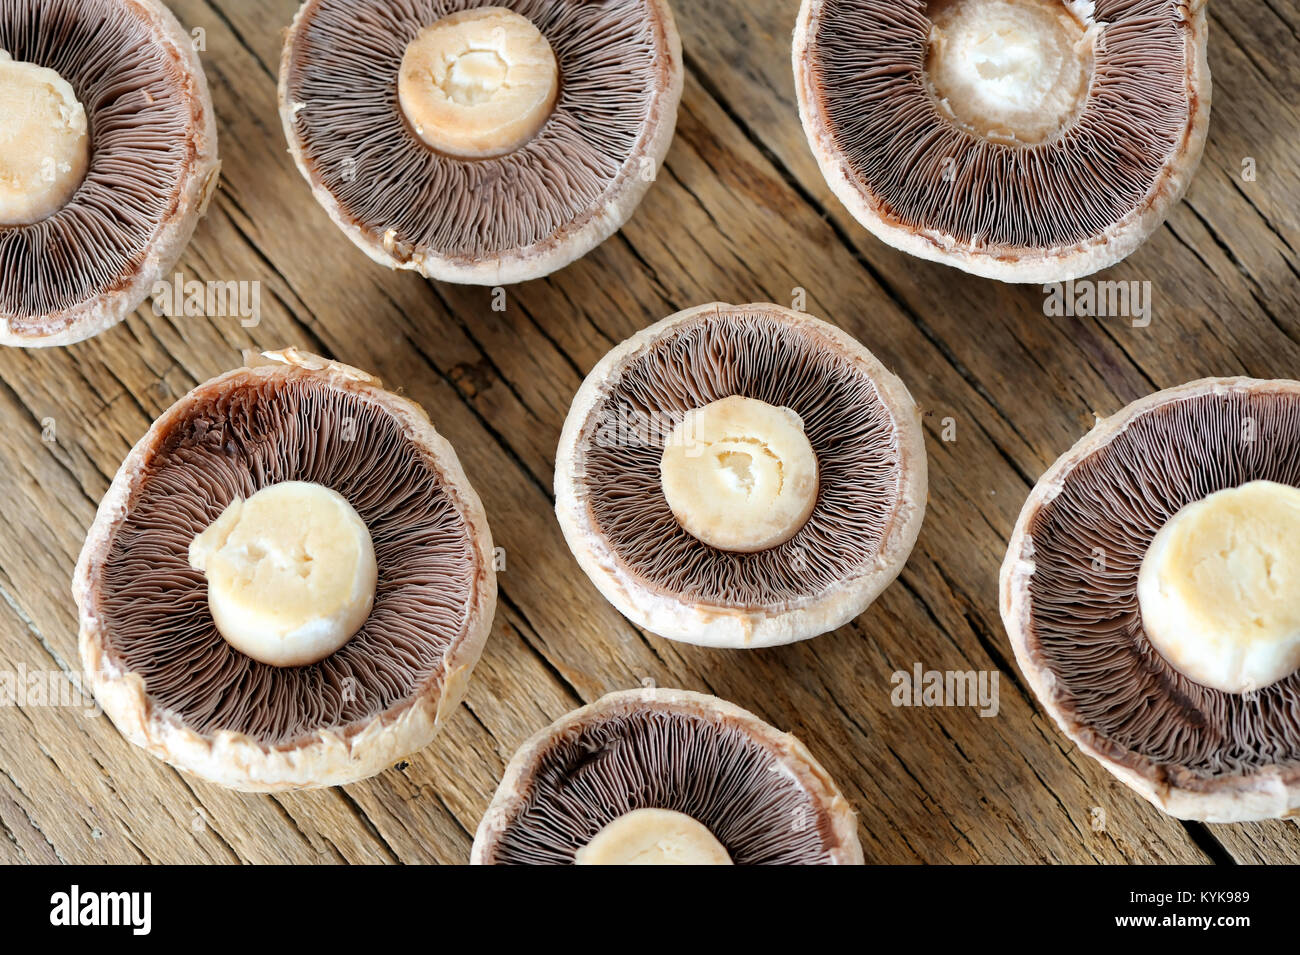 Sliced mushrooms on old wooden table - Stock Image